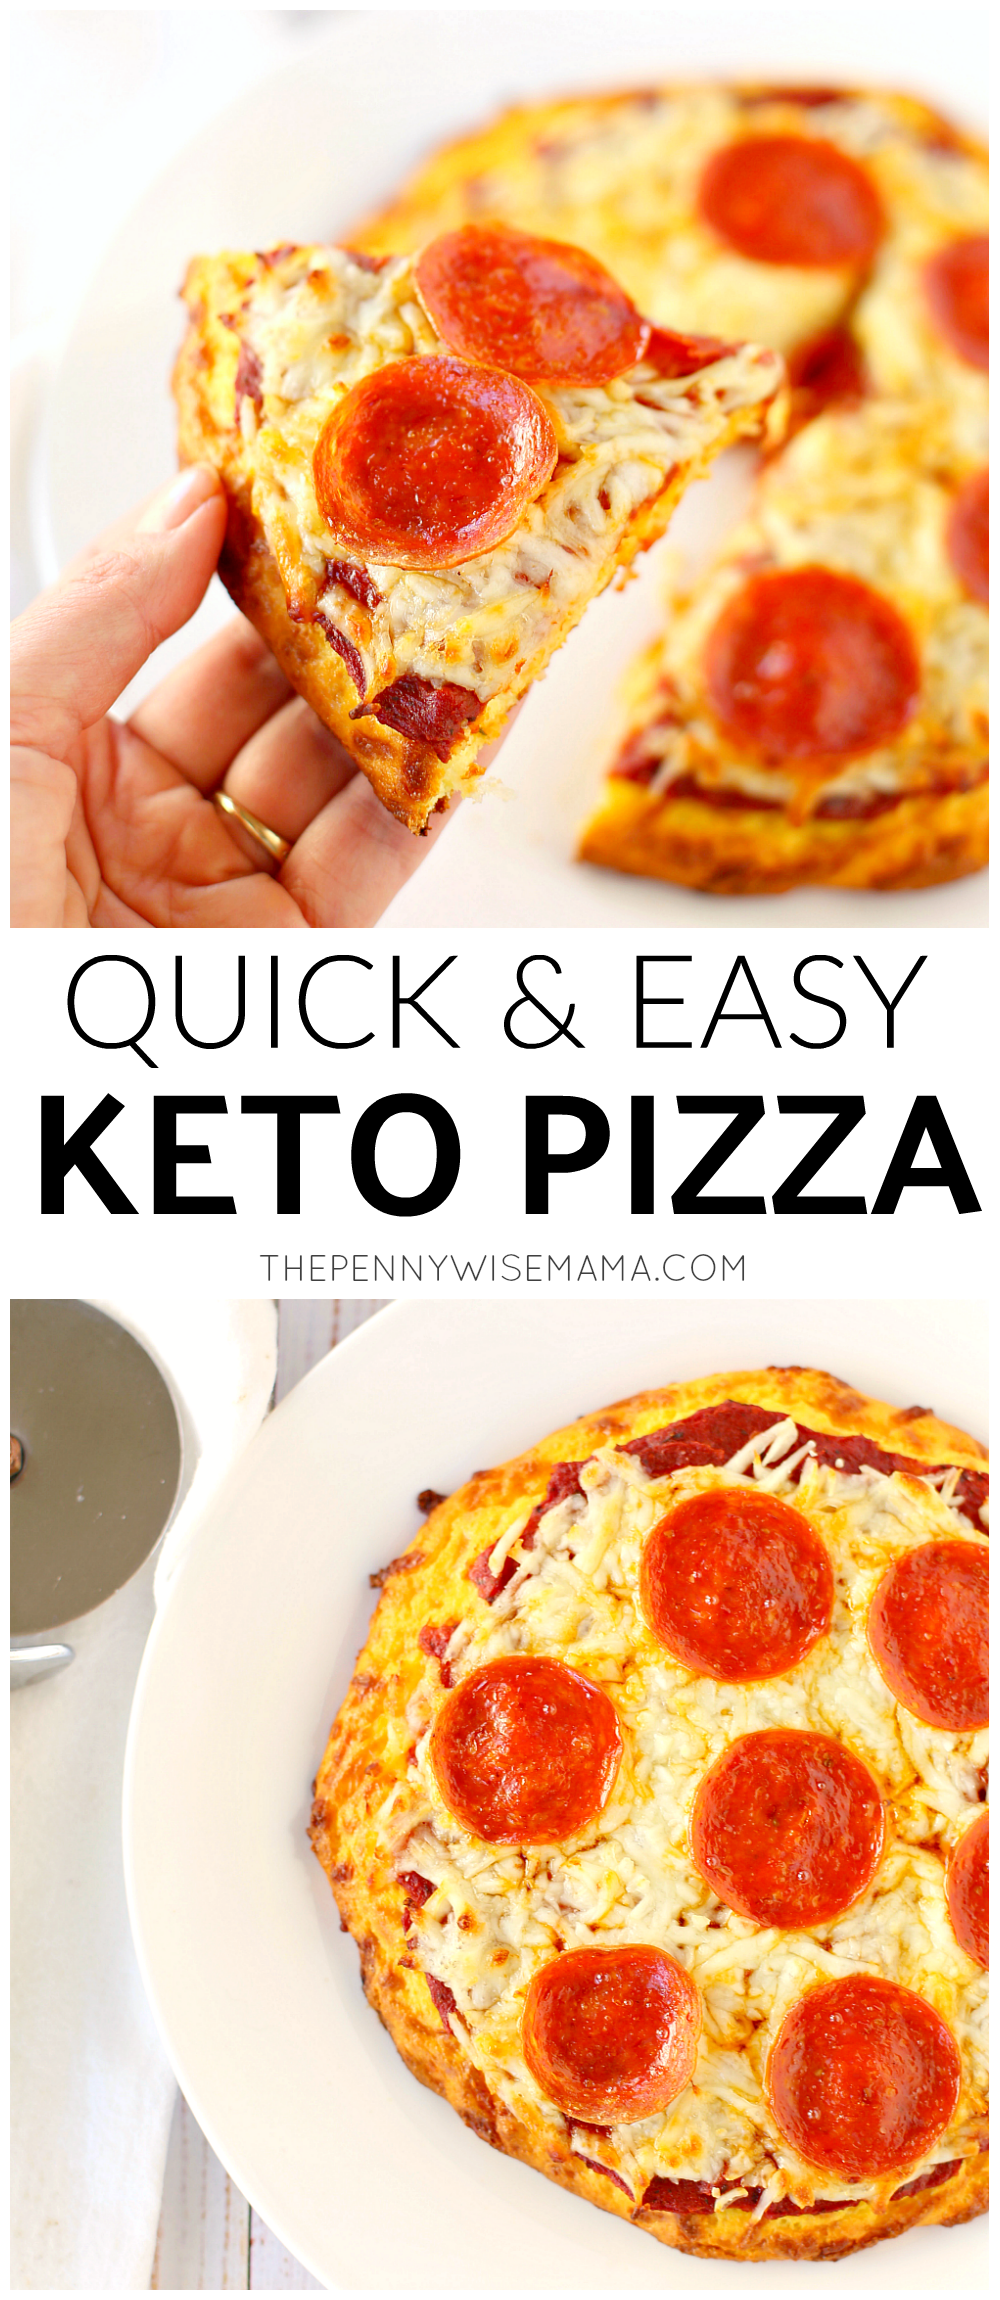 Quick & Easy Low Carb Keto Pizza Recipe - takes just 20 minutes to make!